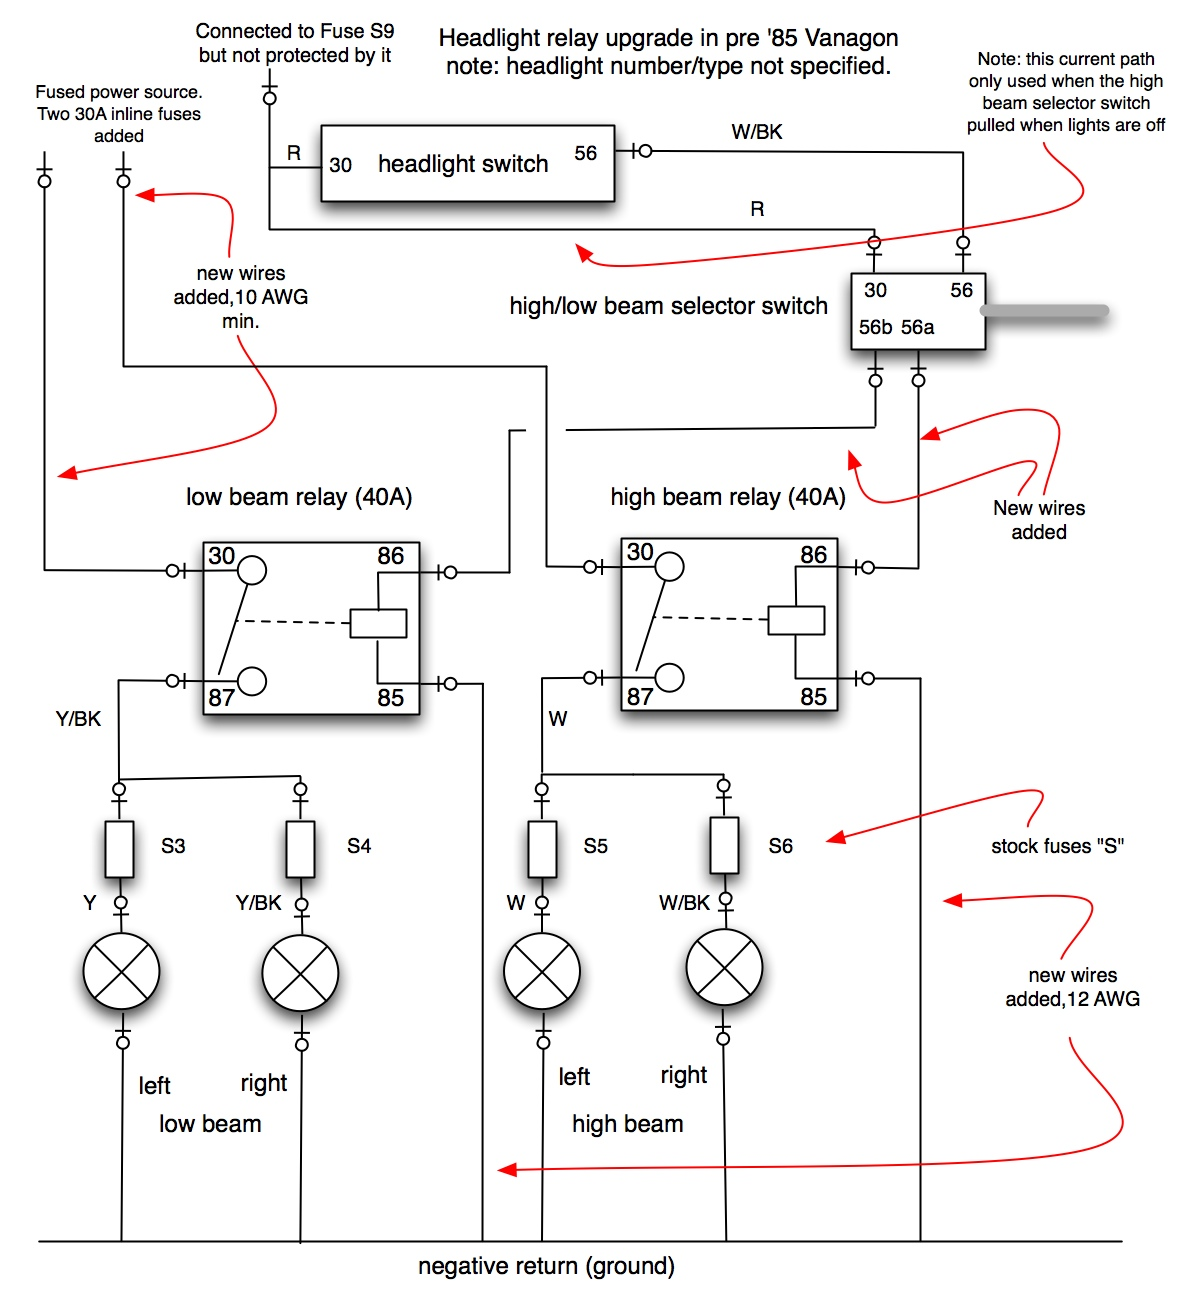 vanagon headlight relay upgrade shooftie fuel pump wiring diagram and now on to the post '85 vanagon wiring